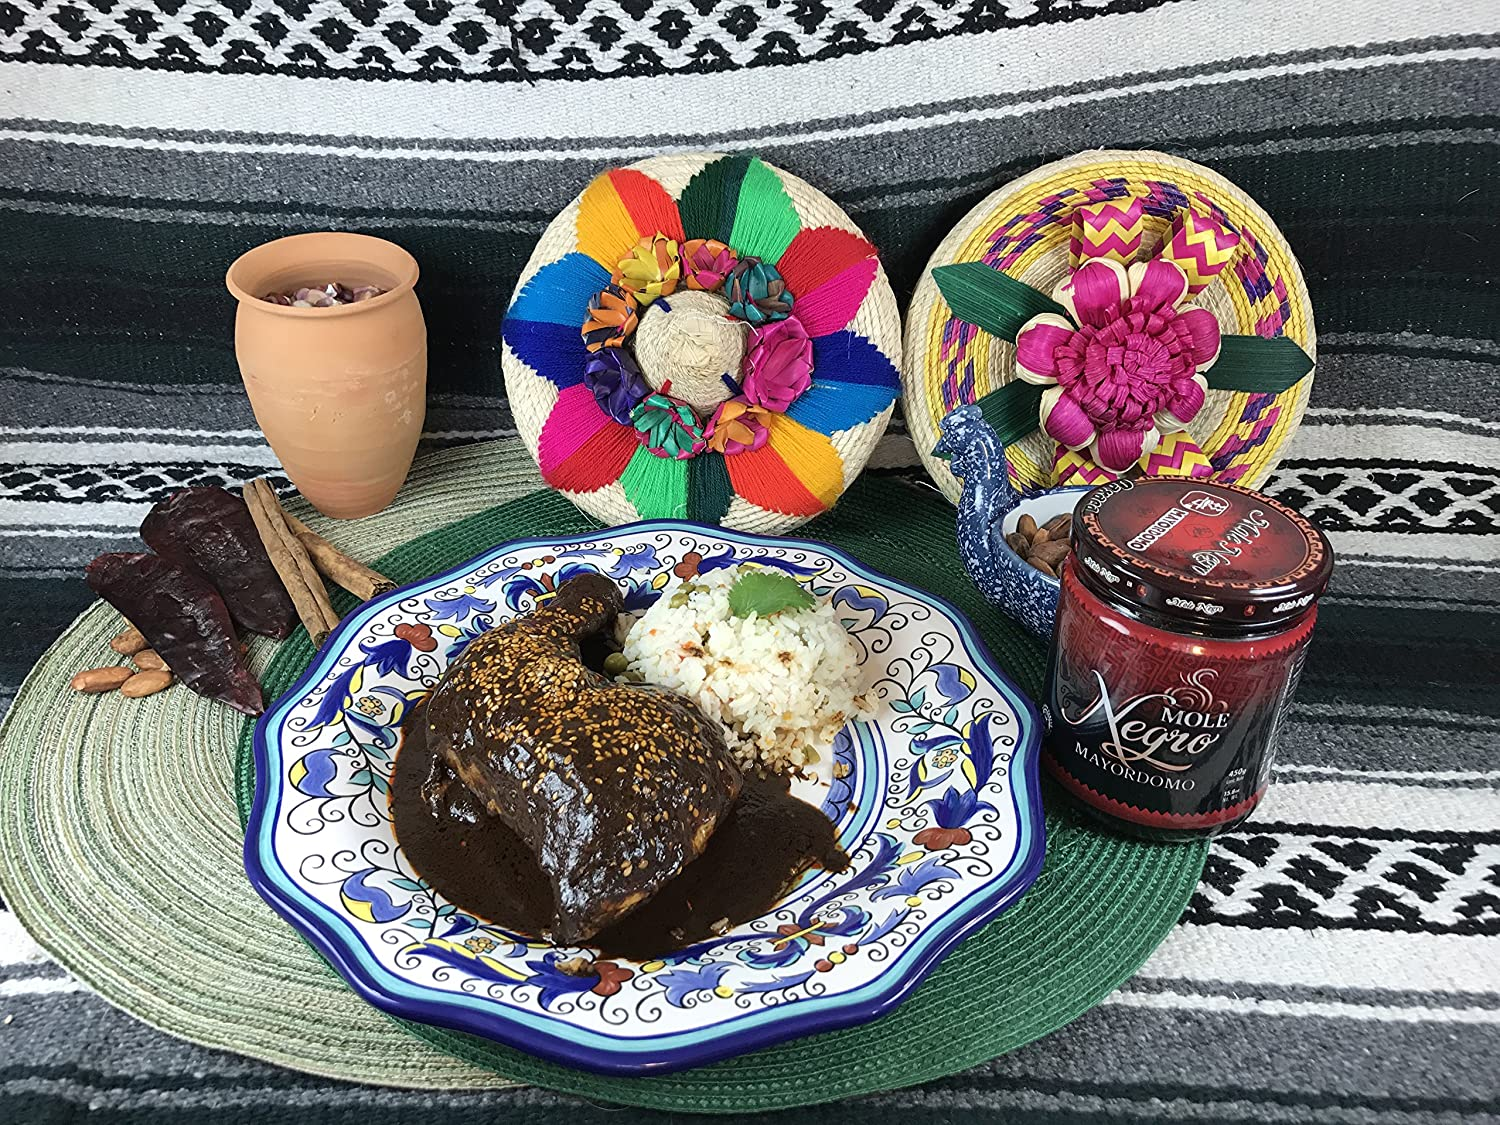 Amazon.com : Mole Negro and Rojo Mayordomo Combo (Mexican Mole Sauce Combo, Red and Black) : Grocery & Gourmet Food